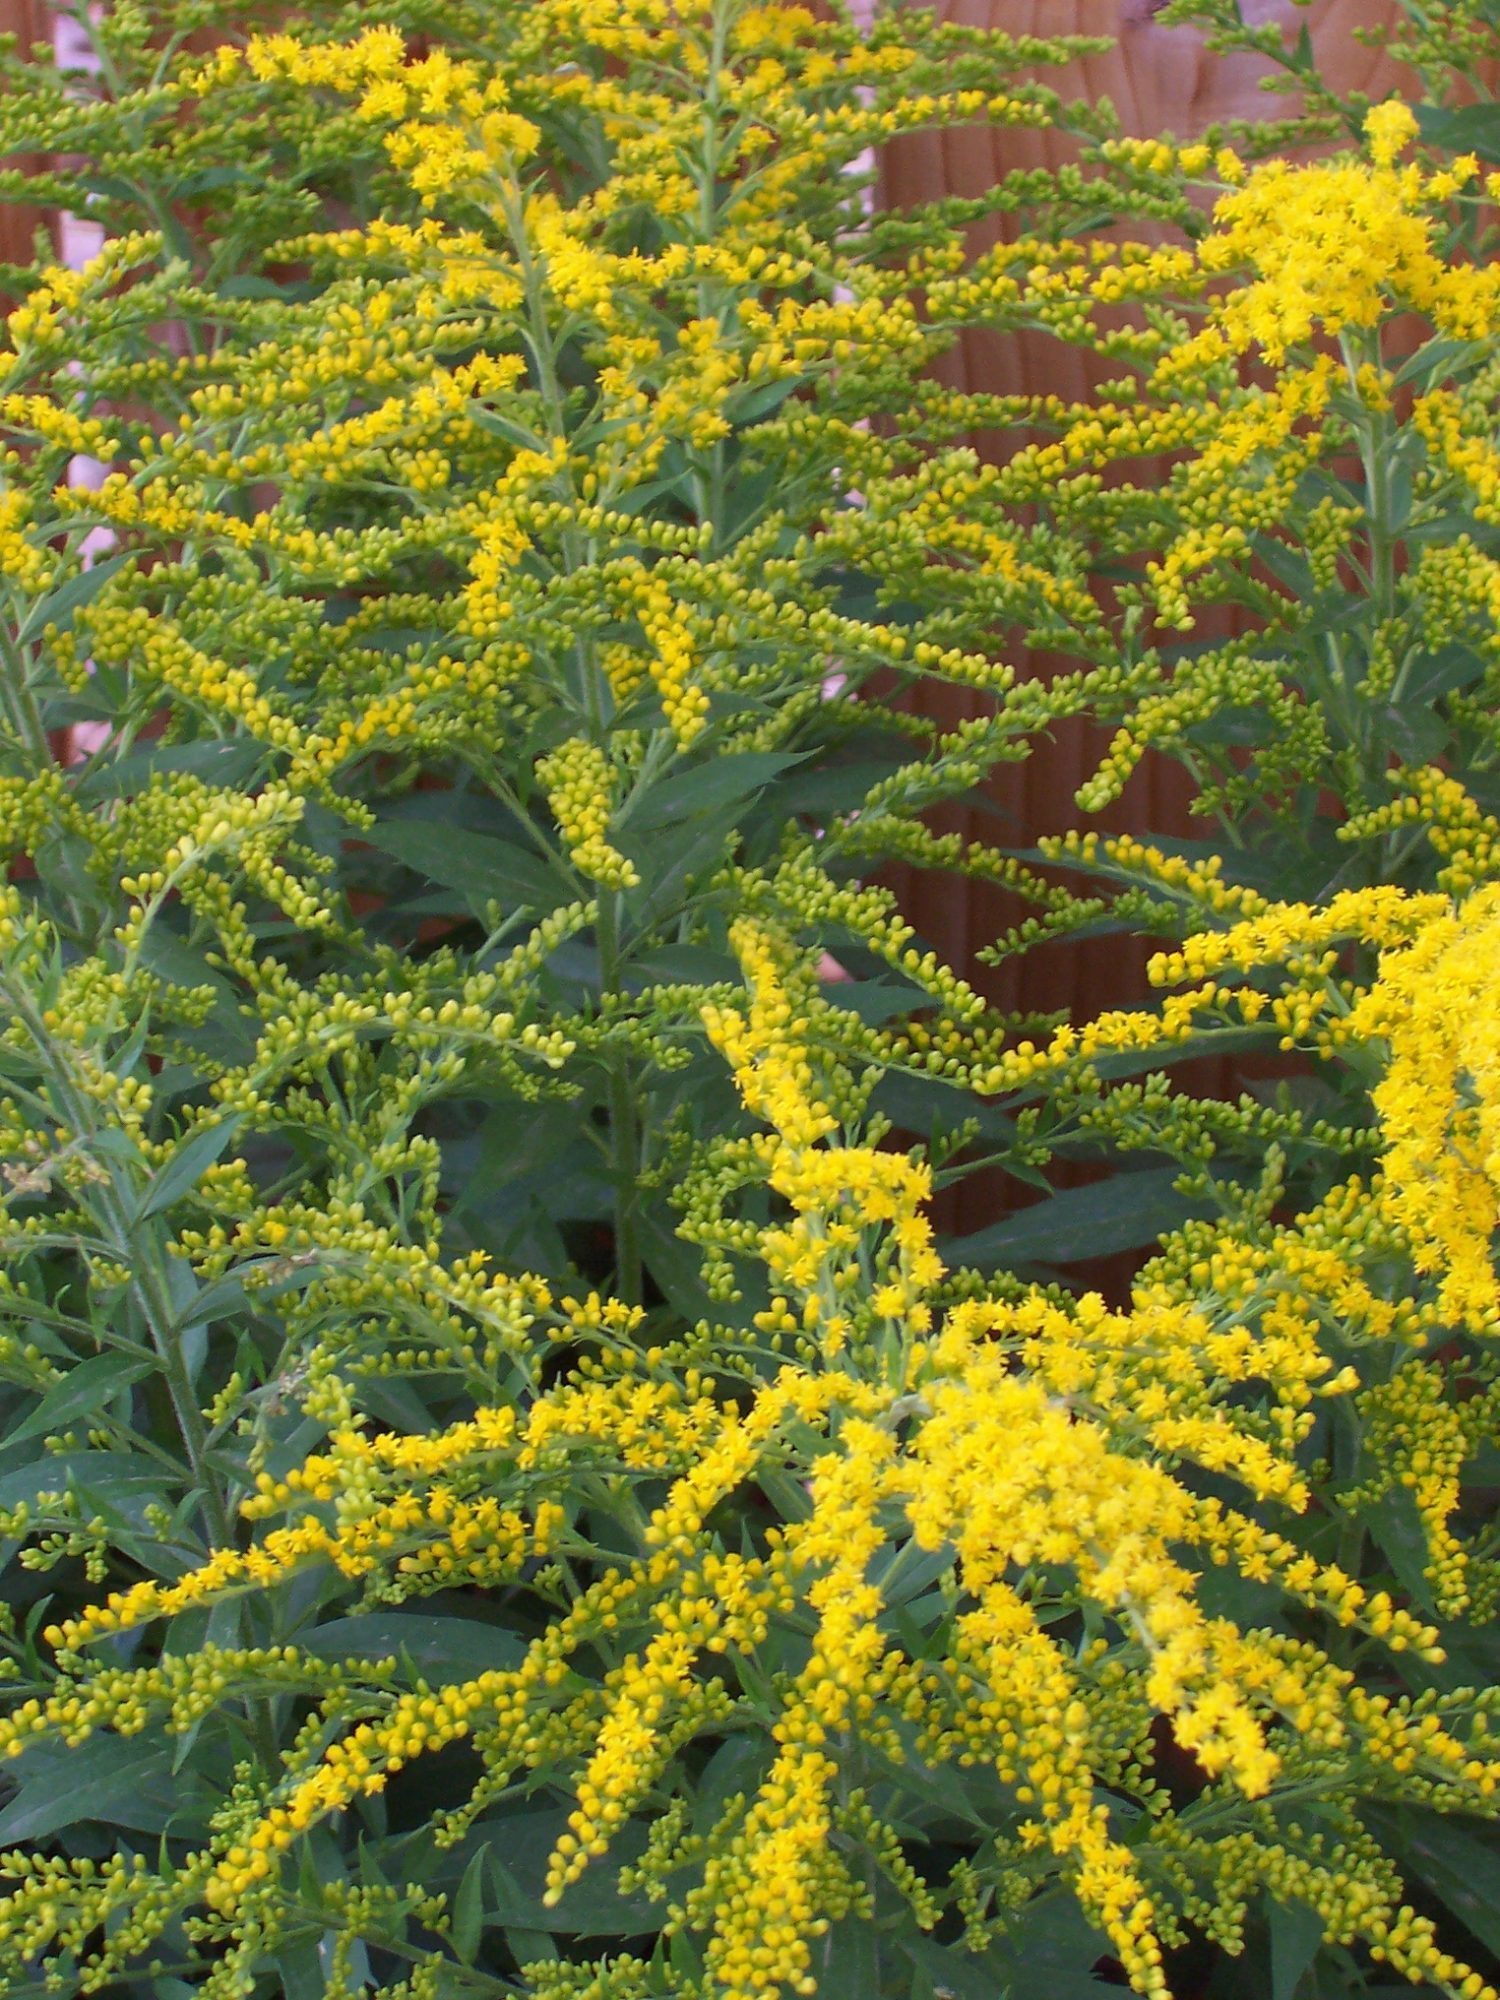 Goldenrod (Solidago) blooms in early autumn.